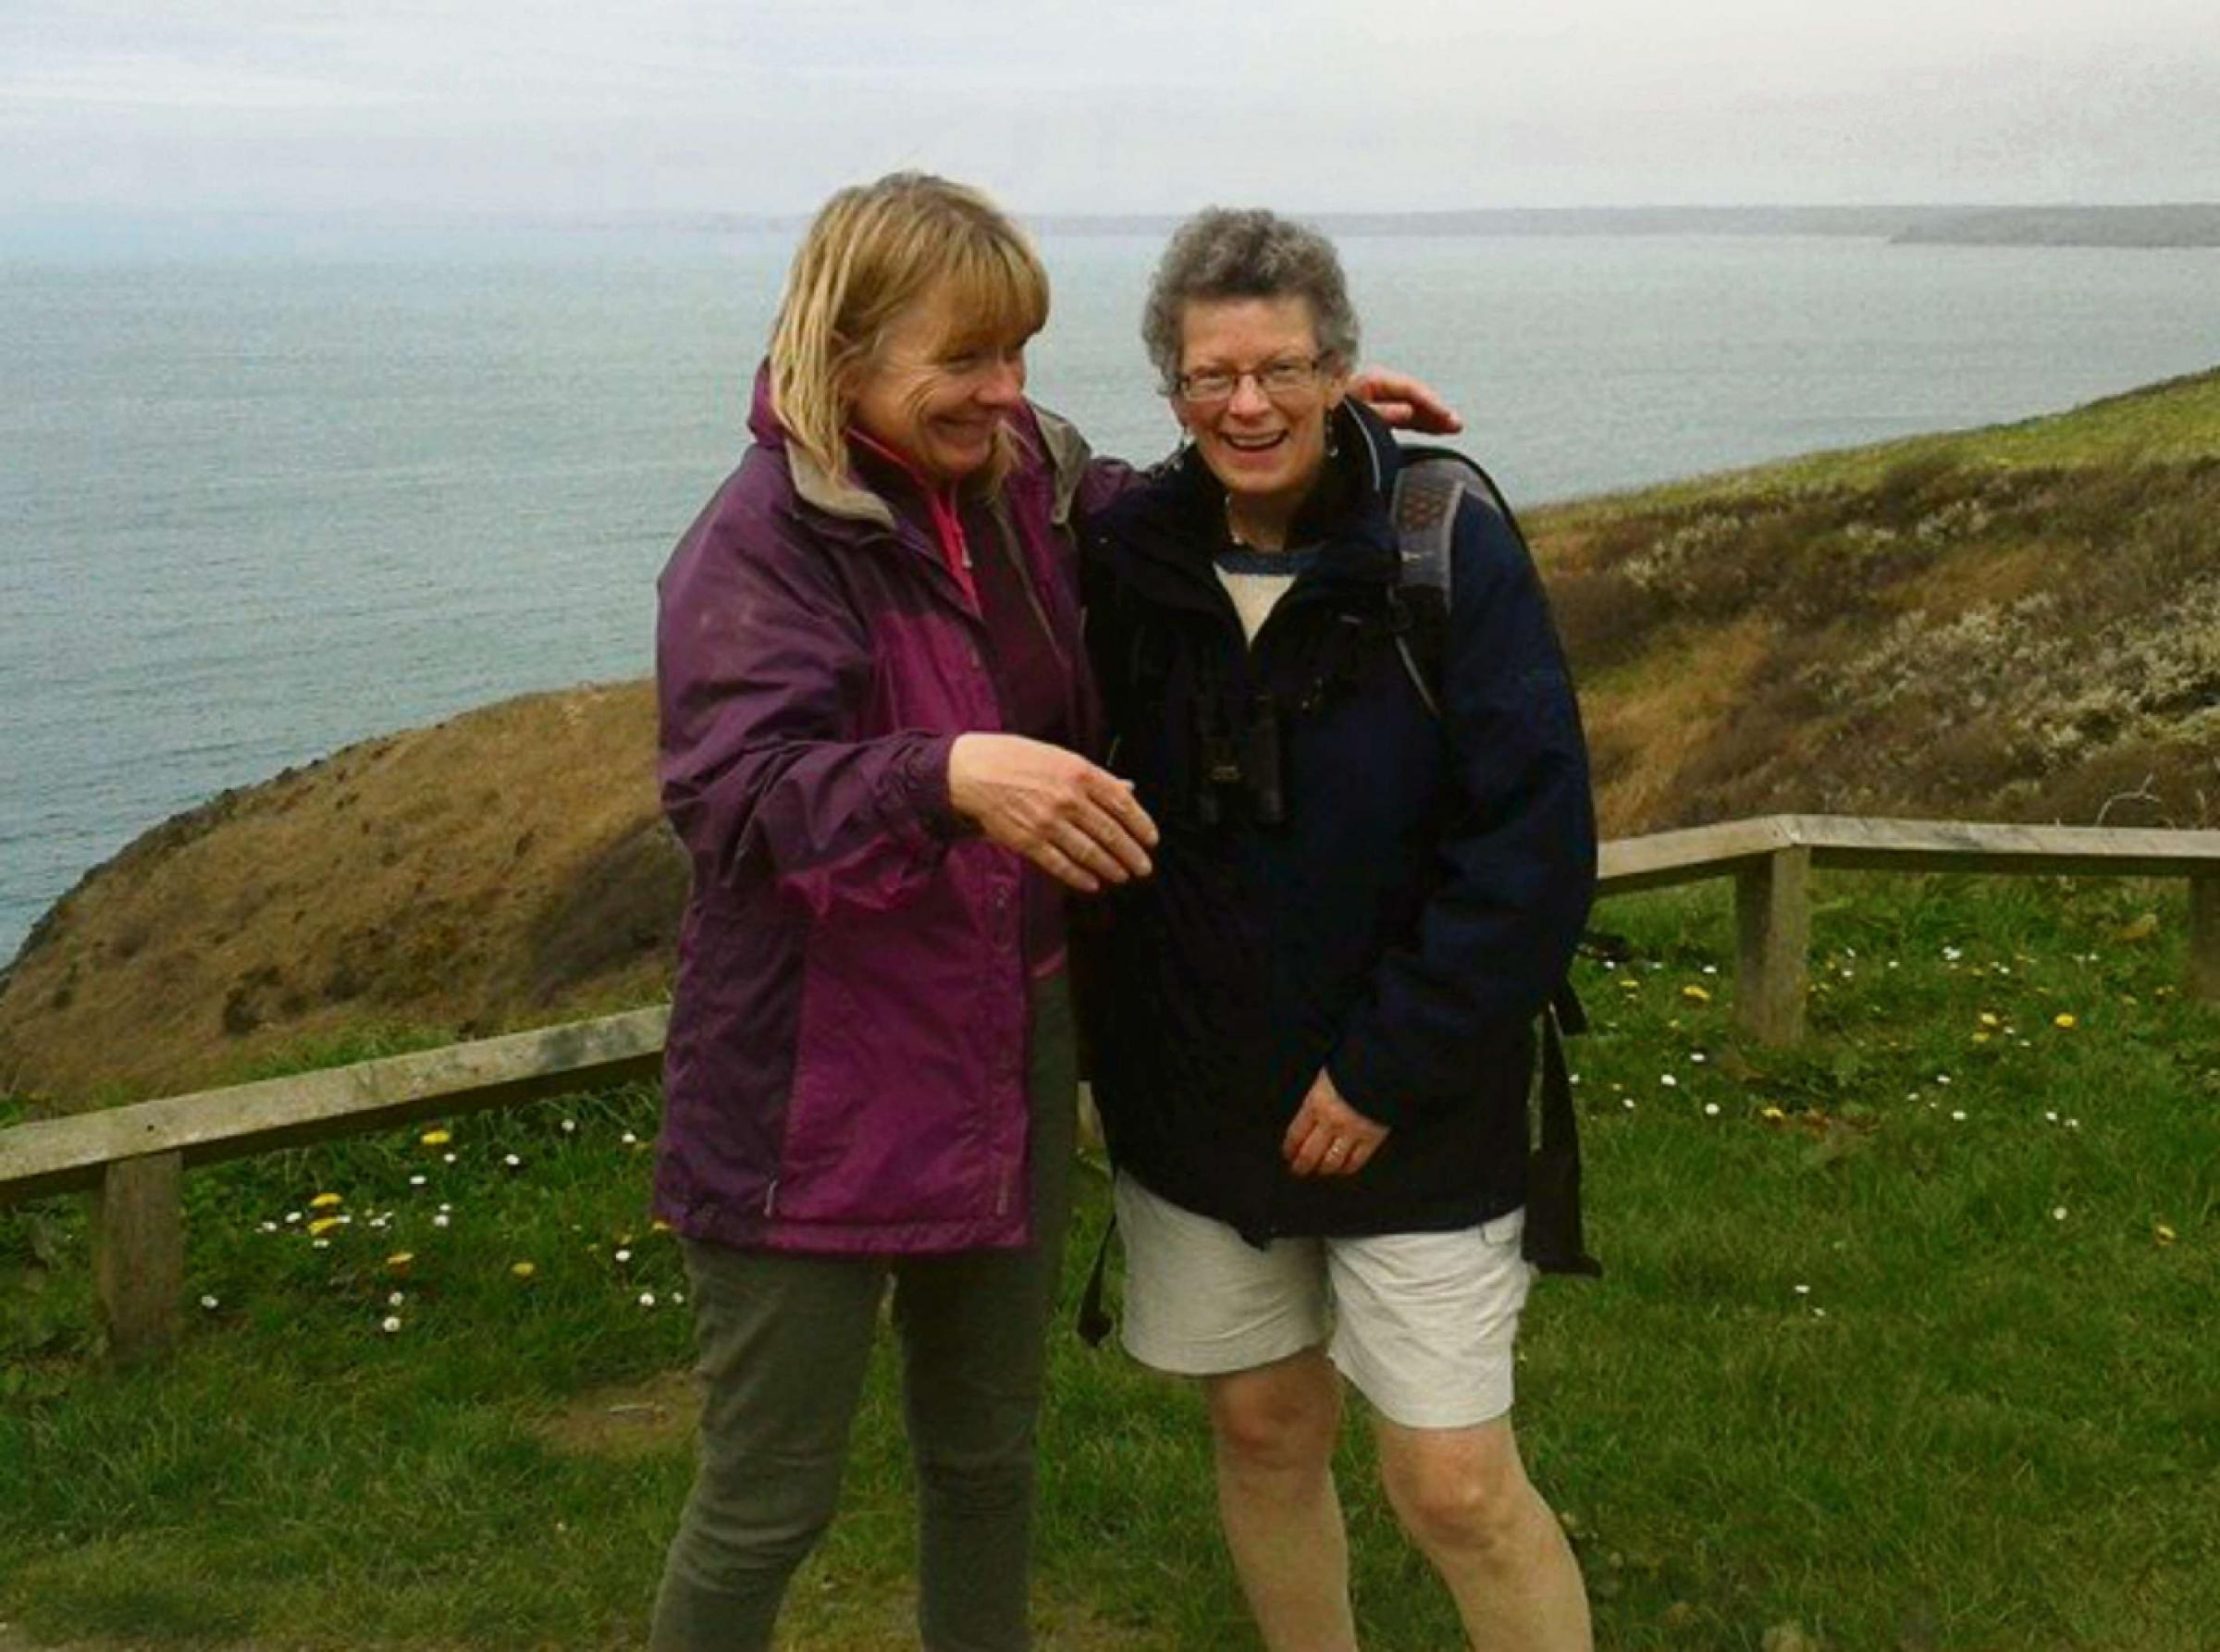 PUSHING THEIR LIMITS: Alison (left) and her friend Lyn have been training for their epic 186-mile fundraiser.